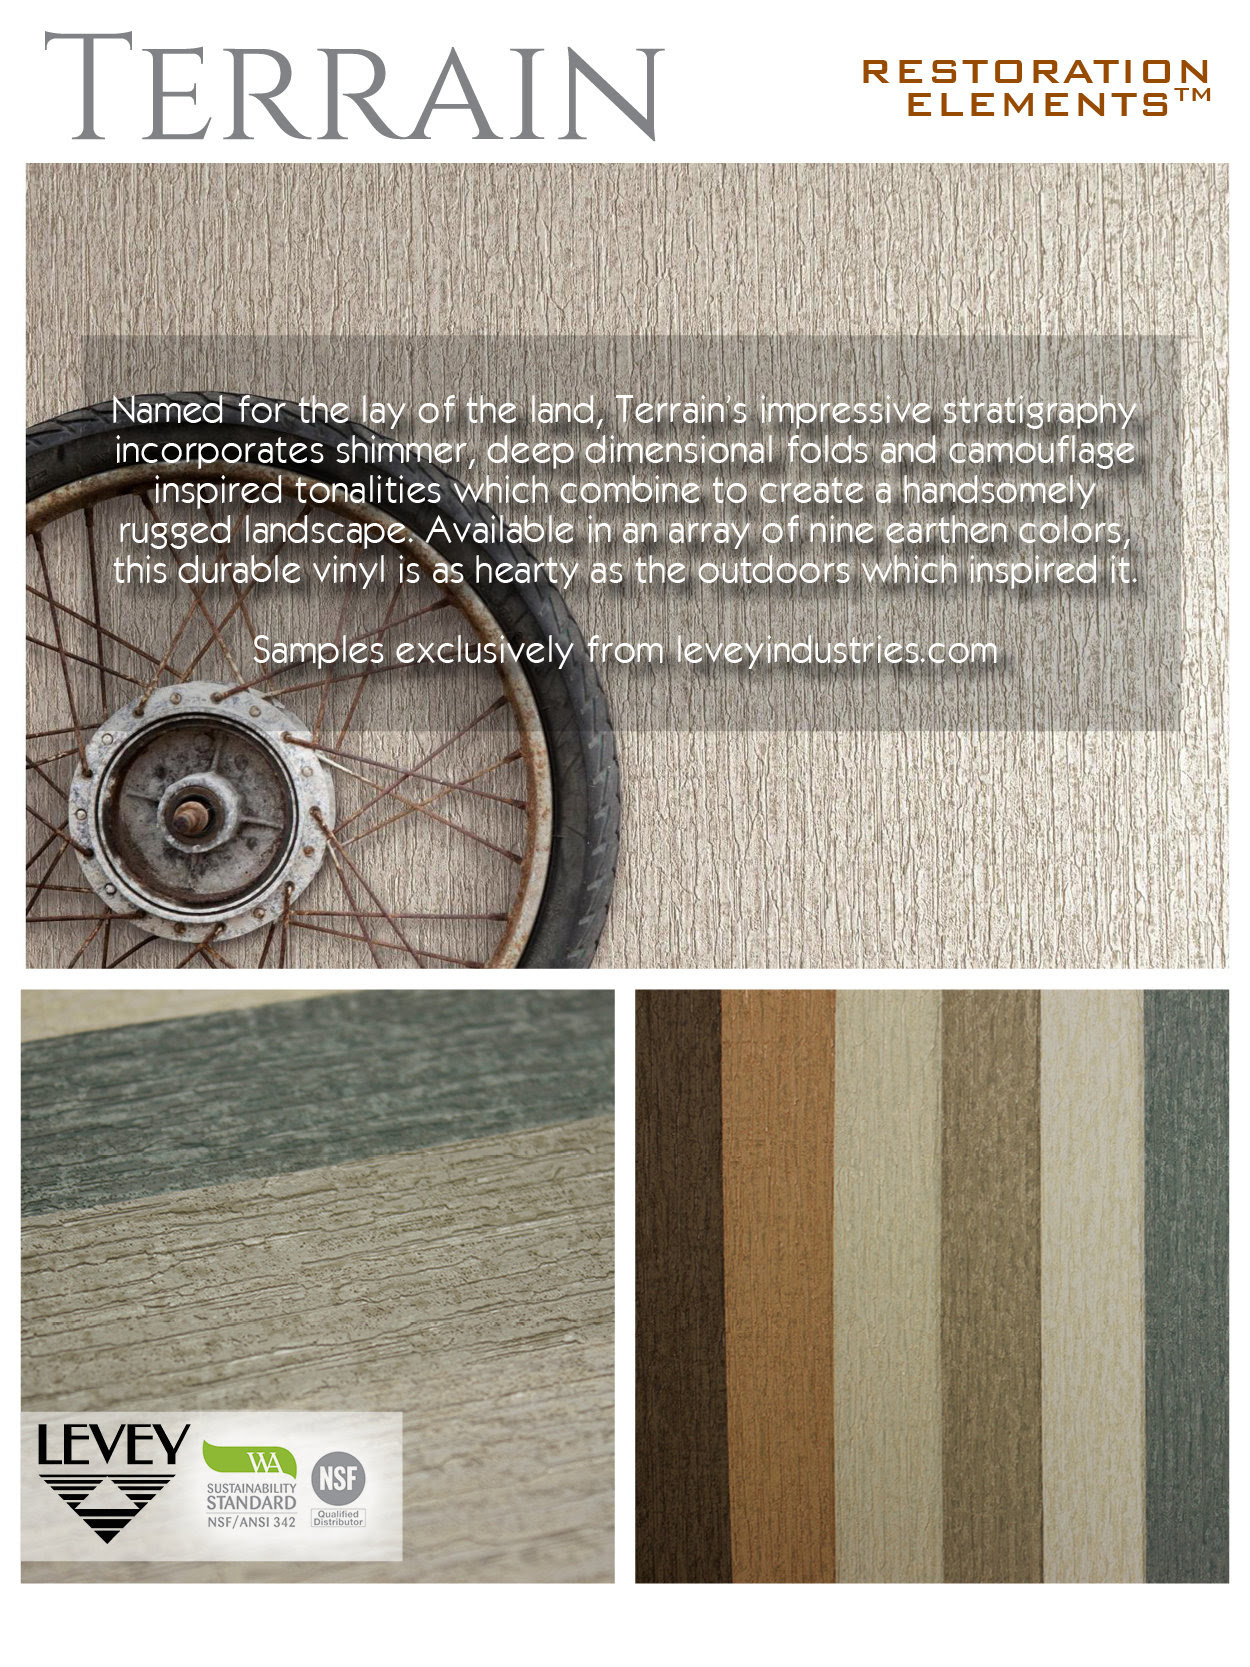 Terrain Wallcovering from Levey Wallcoverings and Architectural Finishes